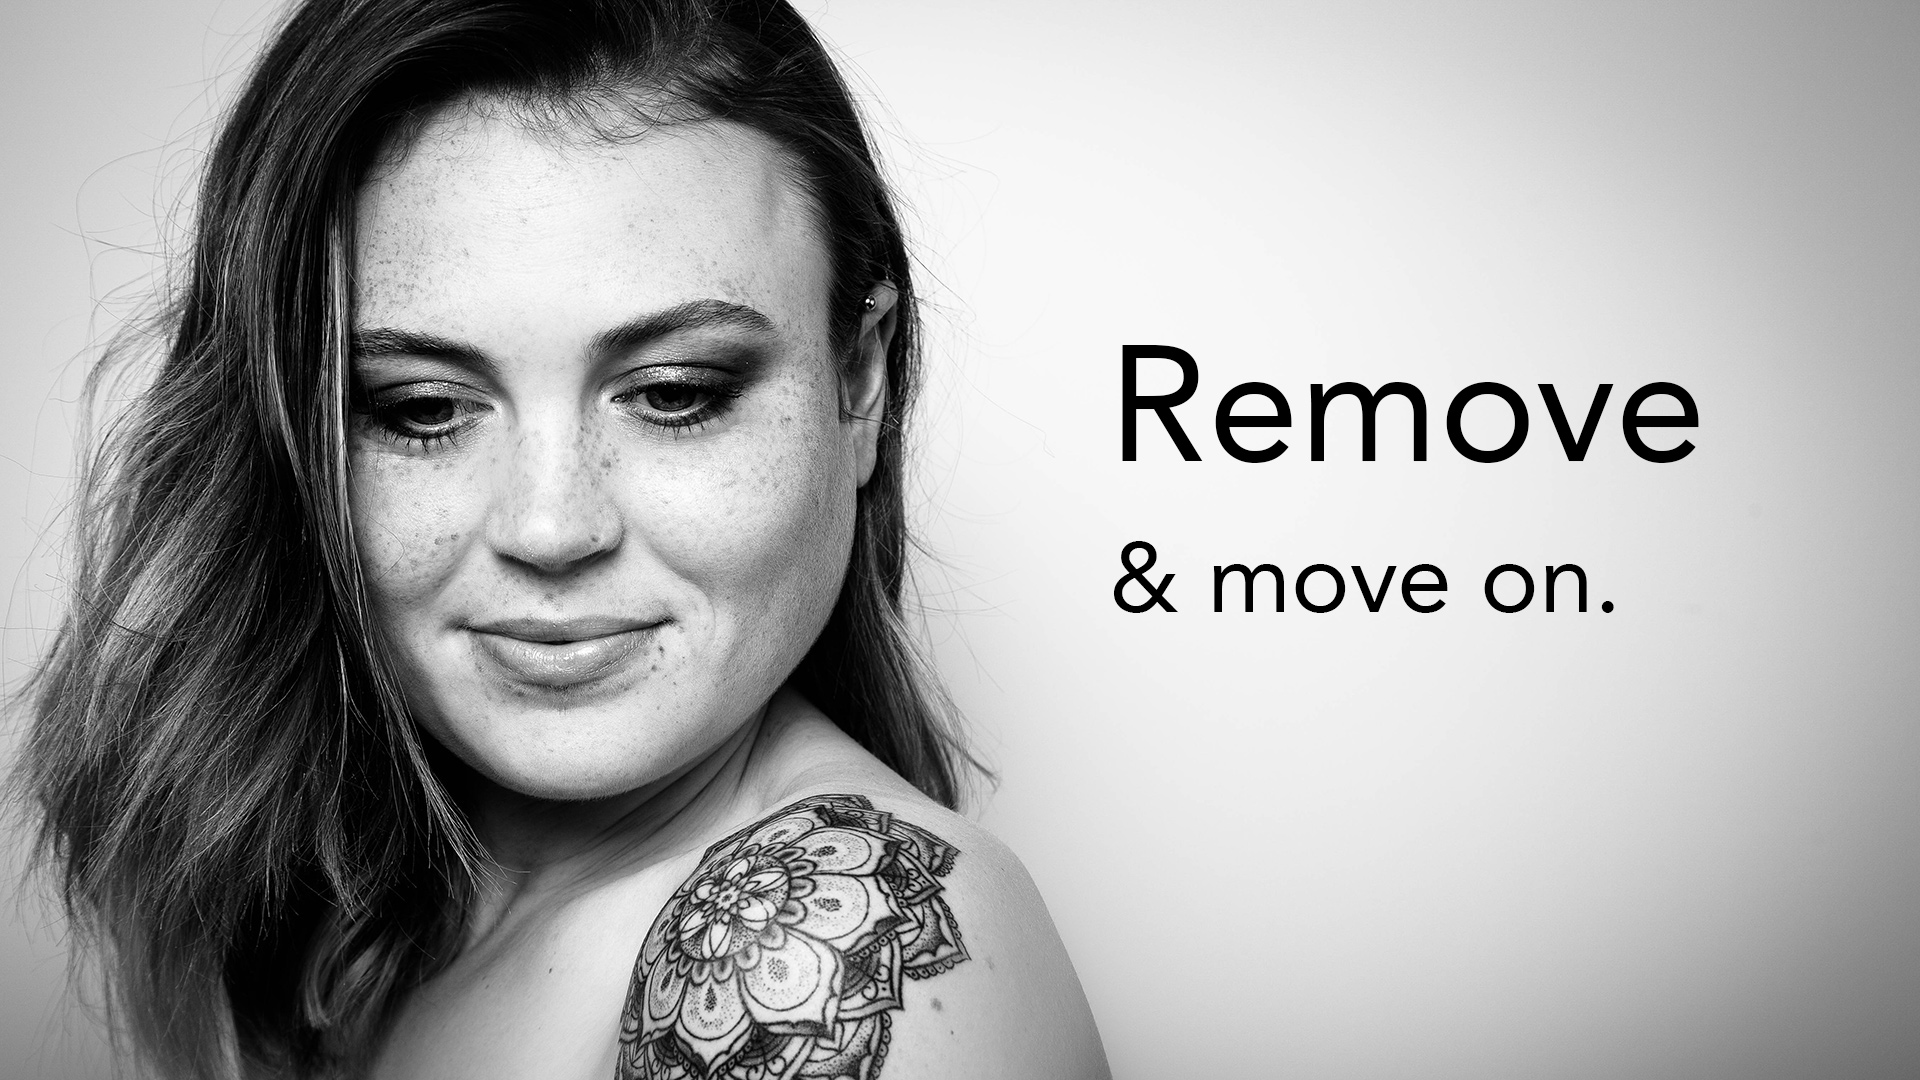 Remove your tattoo and move on - Newcastle Tattoo Removal